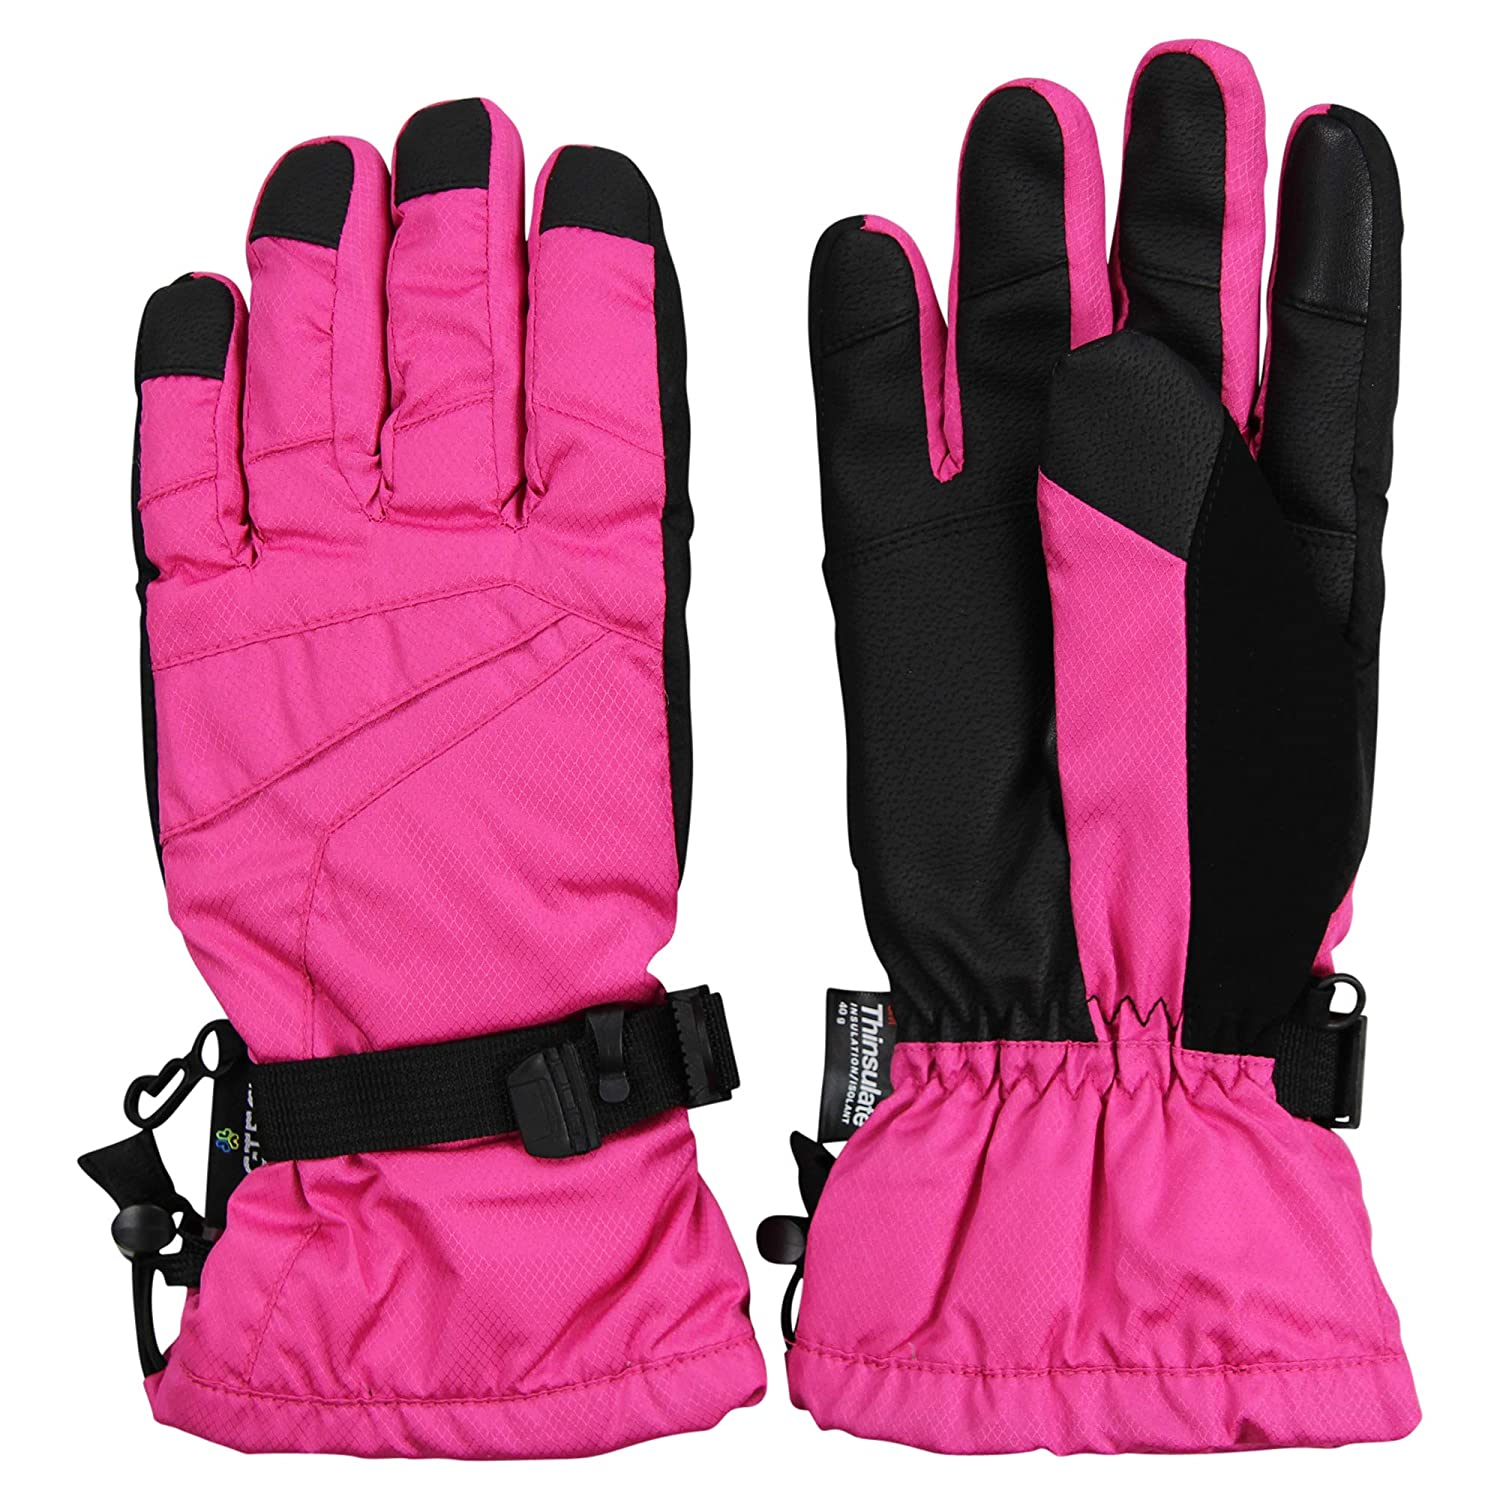 Womens Insulated Waterproof Winter Snow Ski Glove Grand Sierra